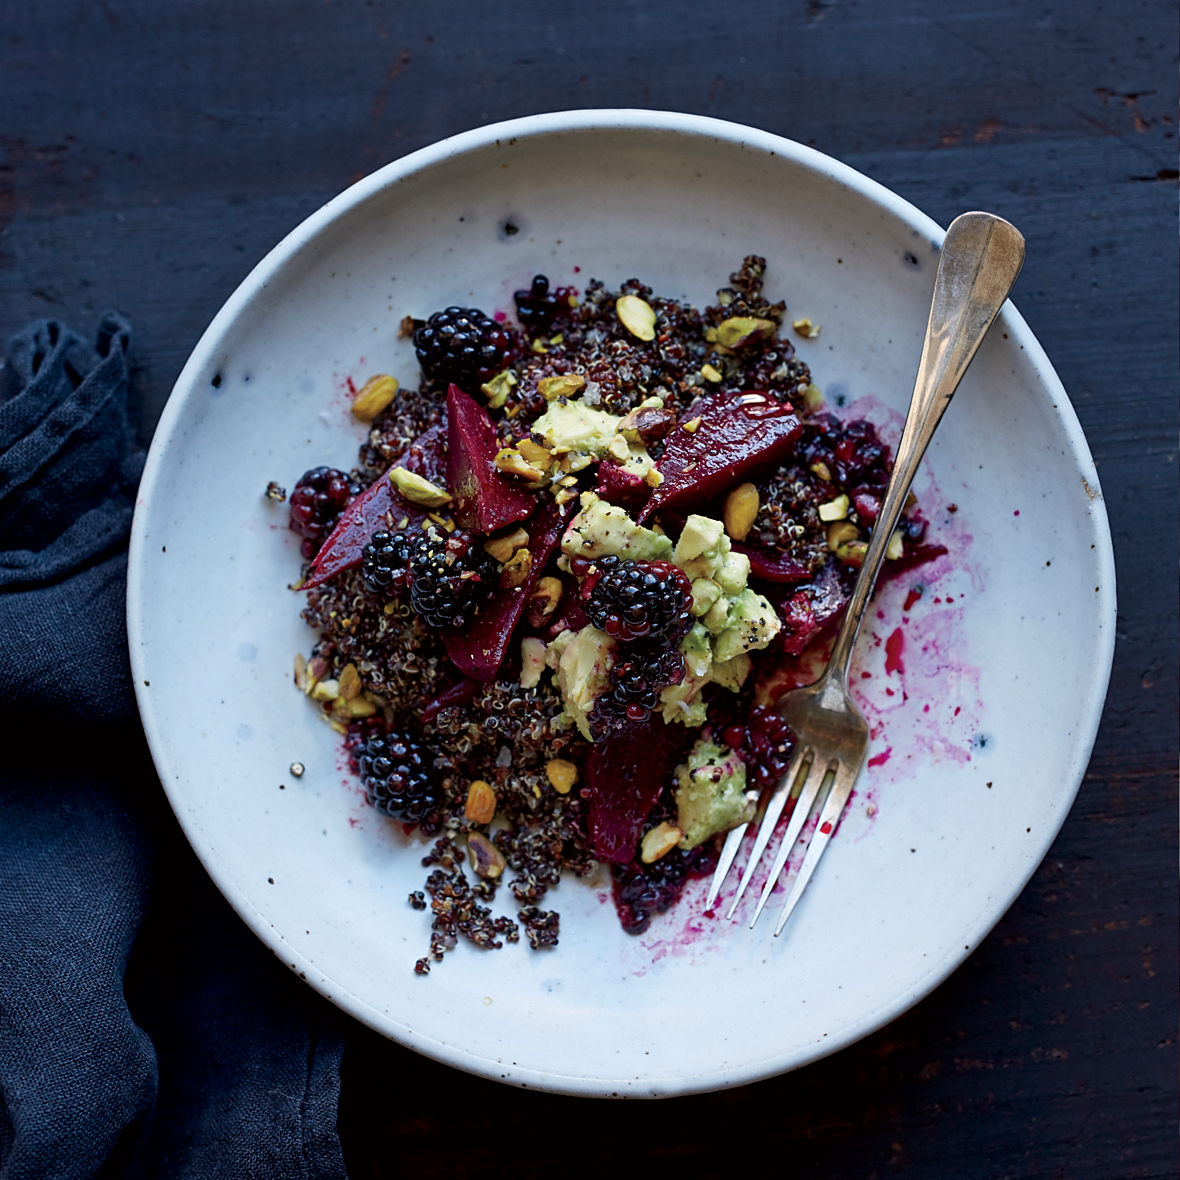 Beets and Berries